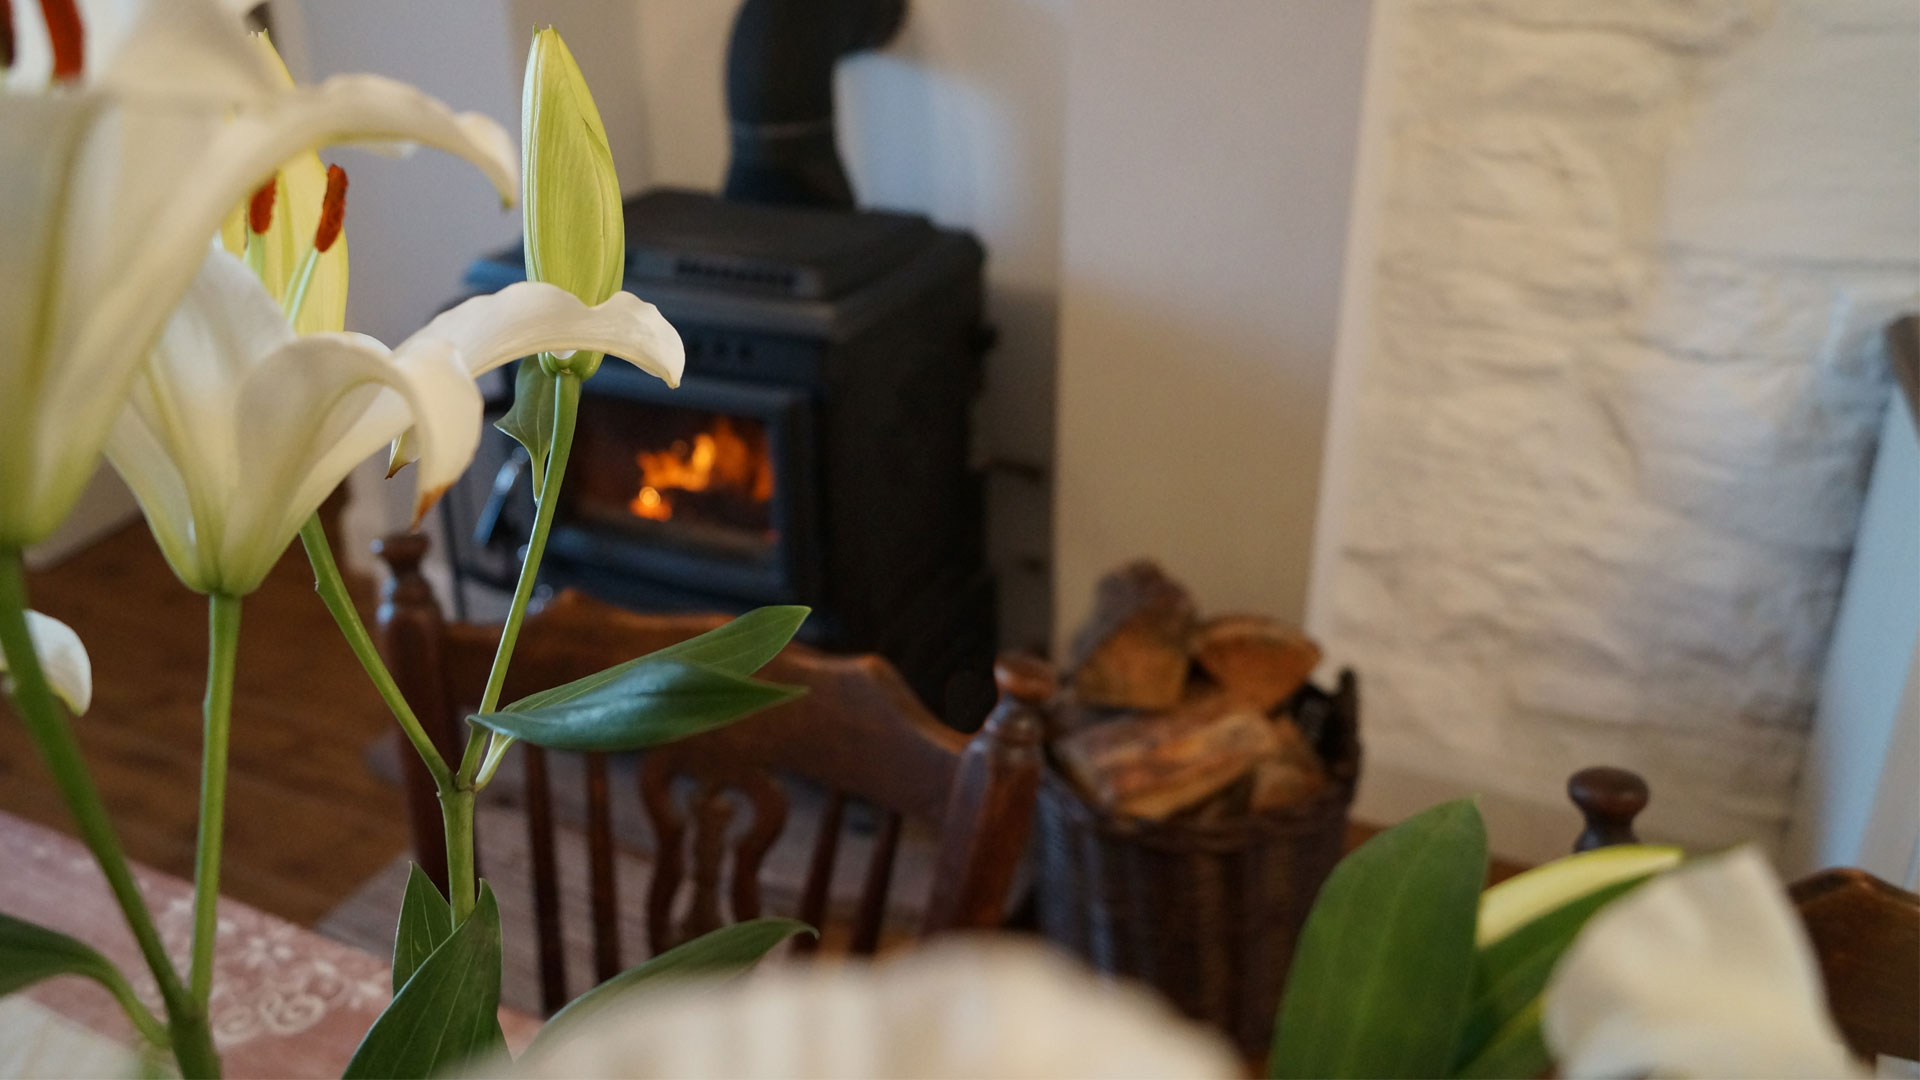 http://mulrannyhouse.ie/wp-content/uploads/2015/02/MR-fire-and-flowers.jpg